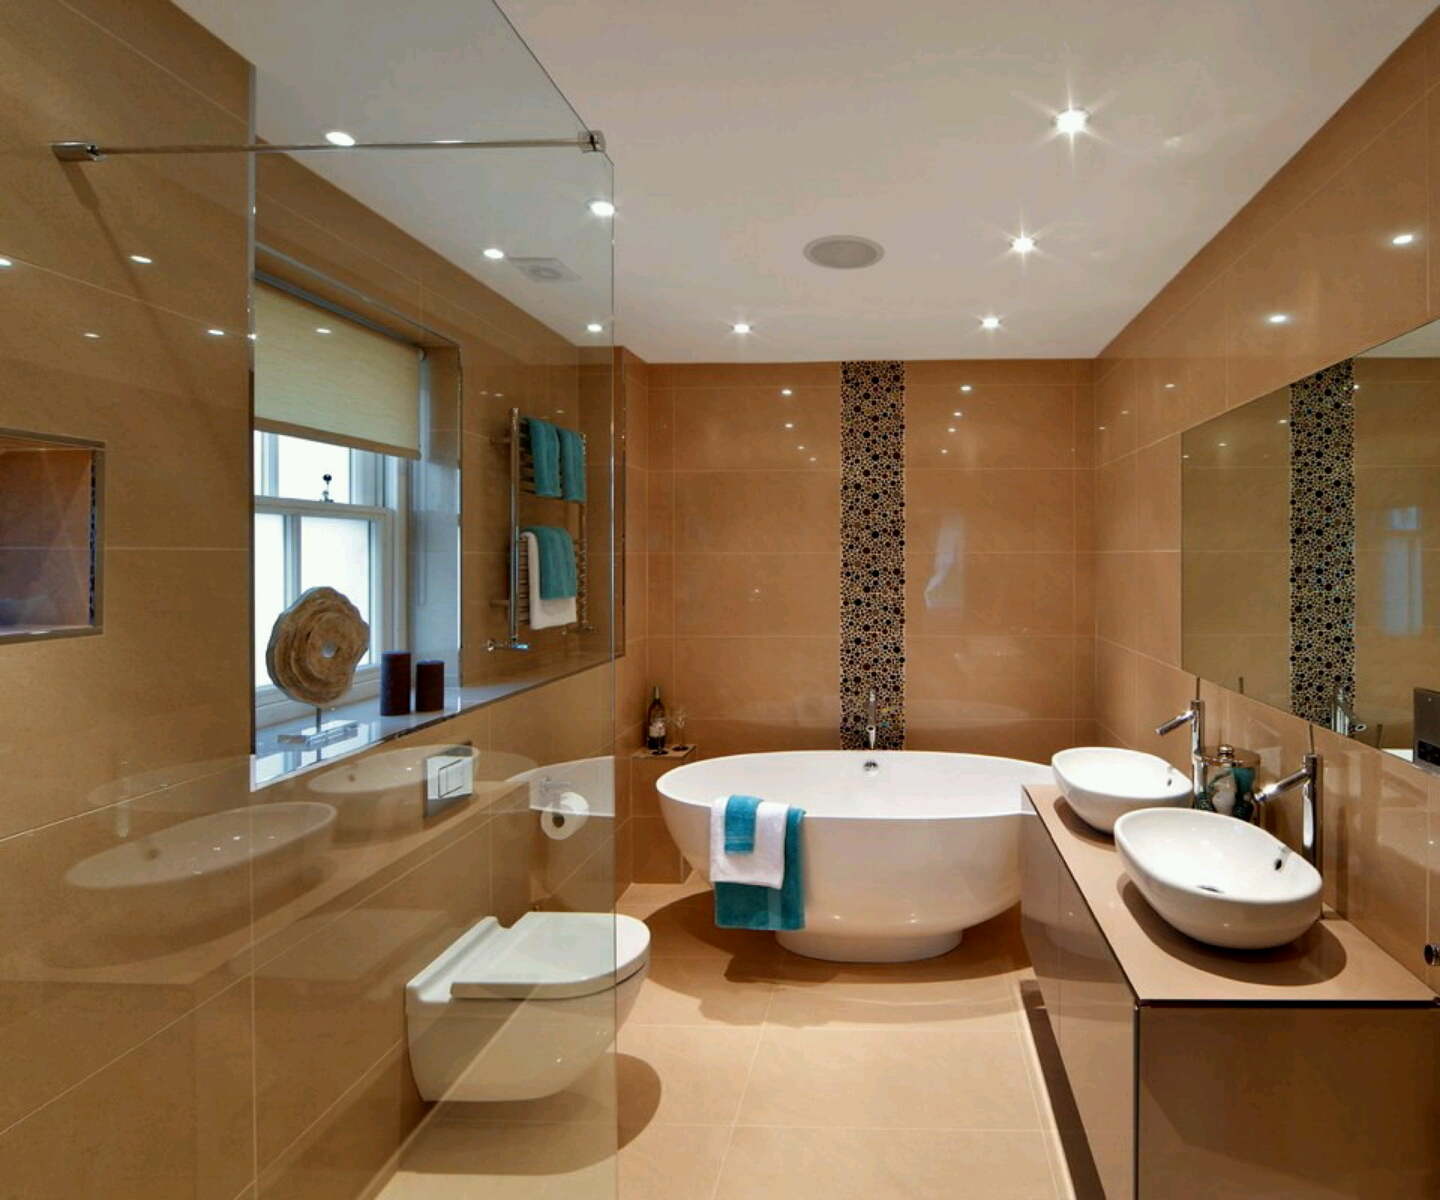 25 small but luxury bathroom design ideas for Bathroom gallery ideas